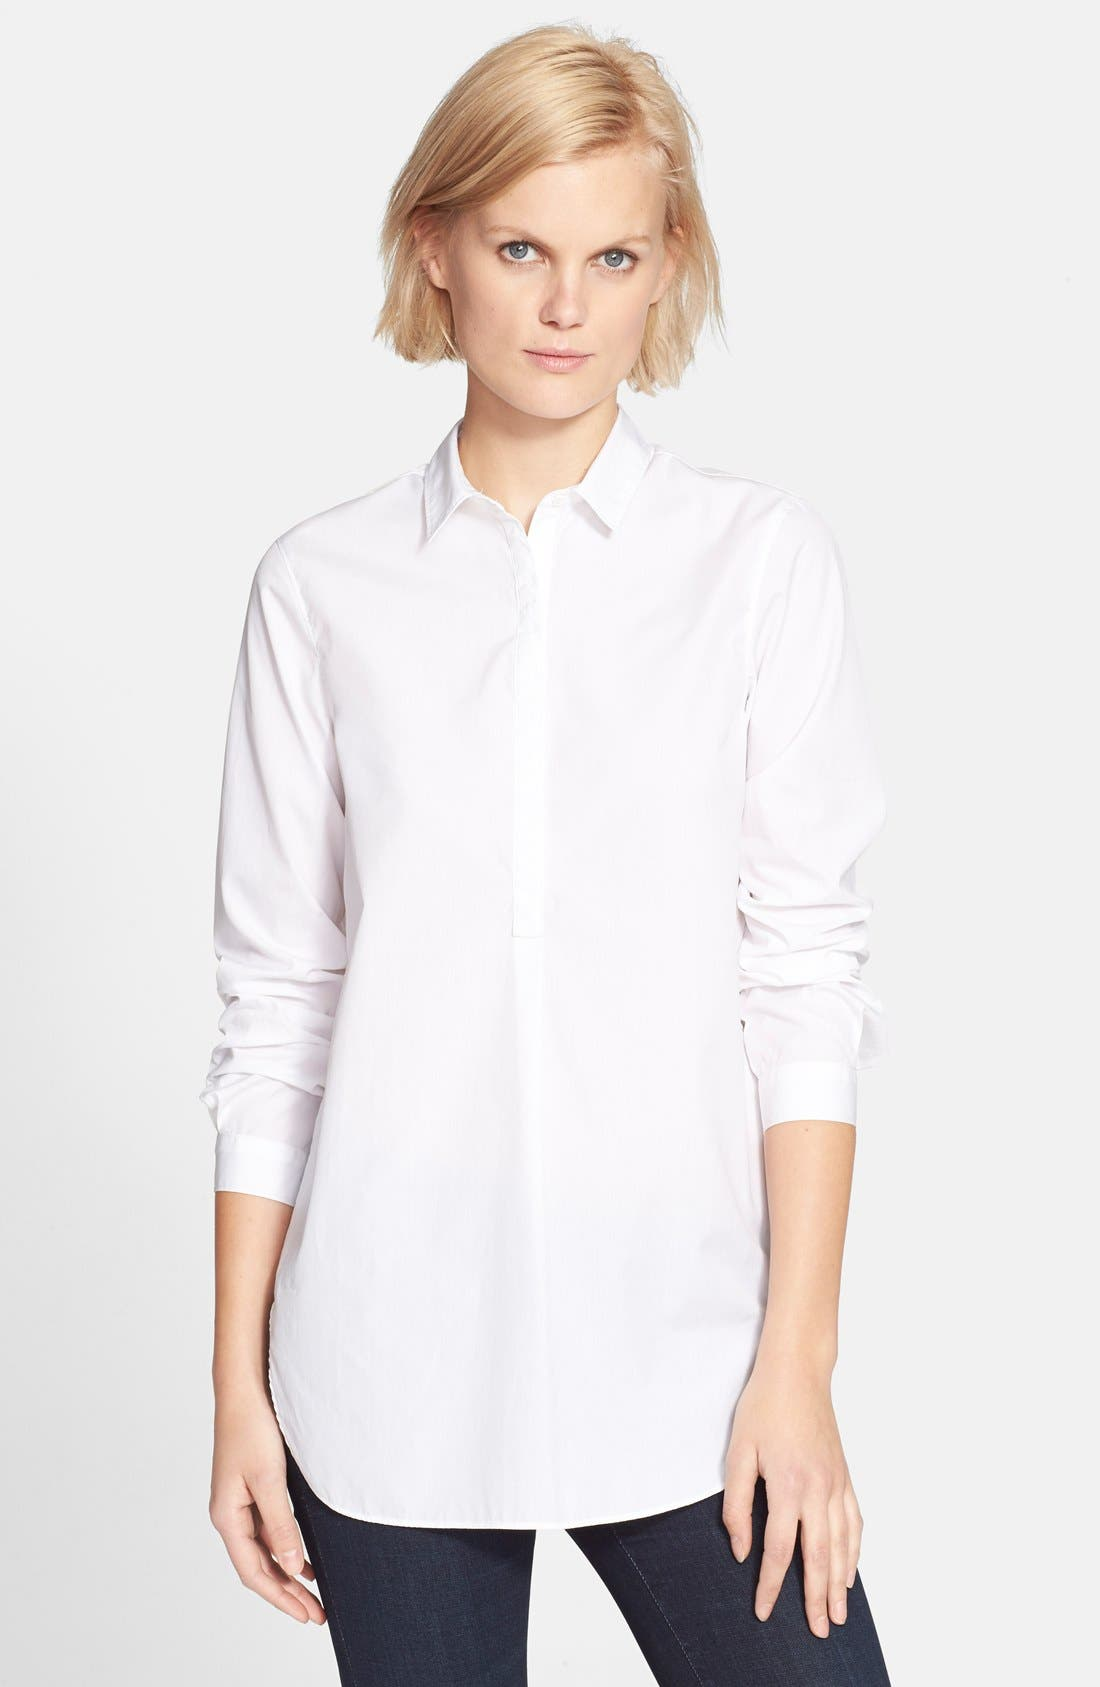 AYR 'The Easy' Cotton Poplin Shirt